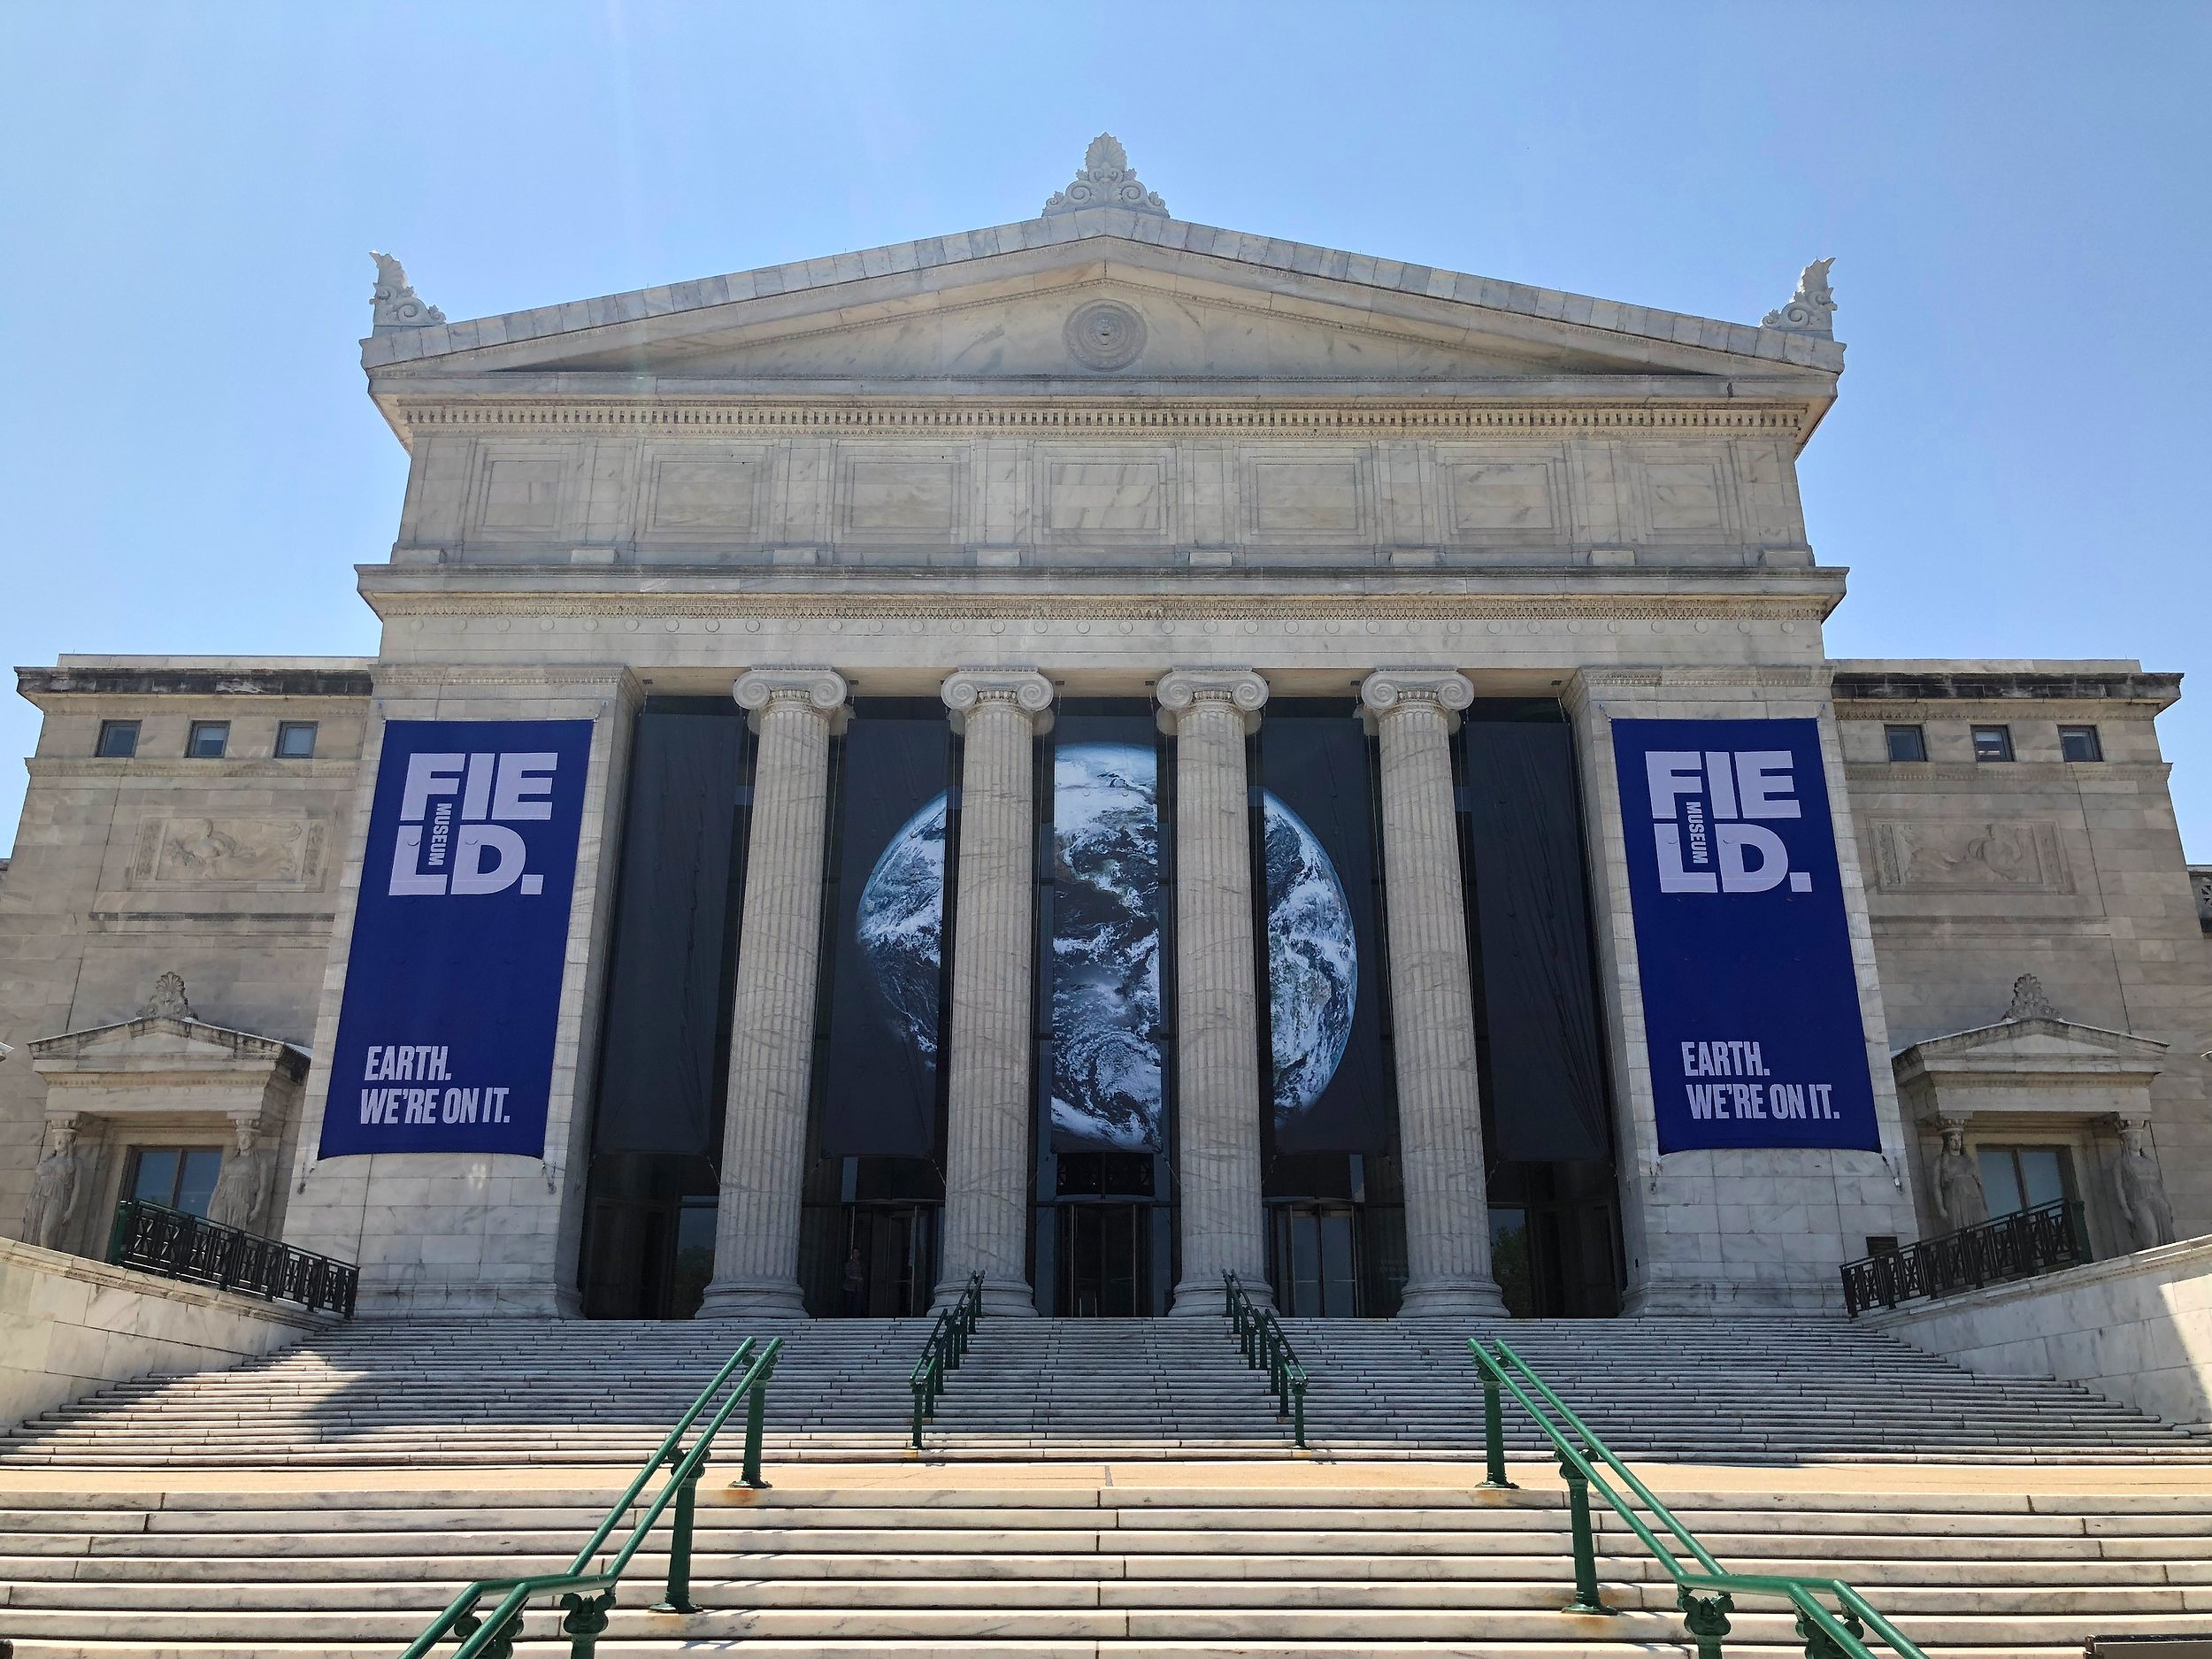 The North Entrance to the Field Museum